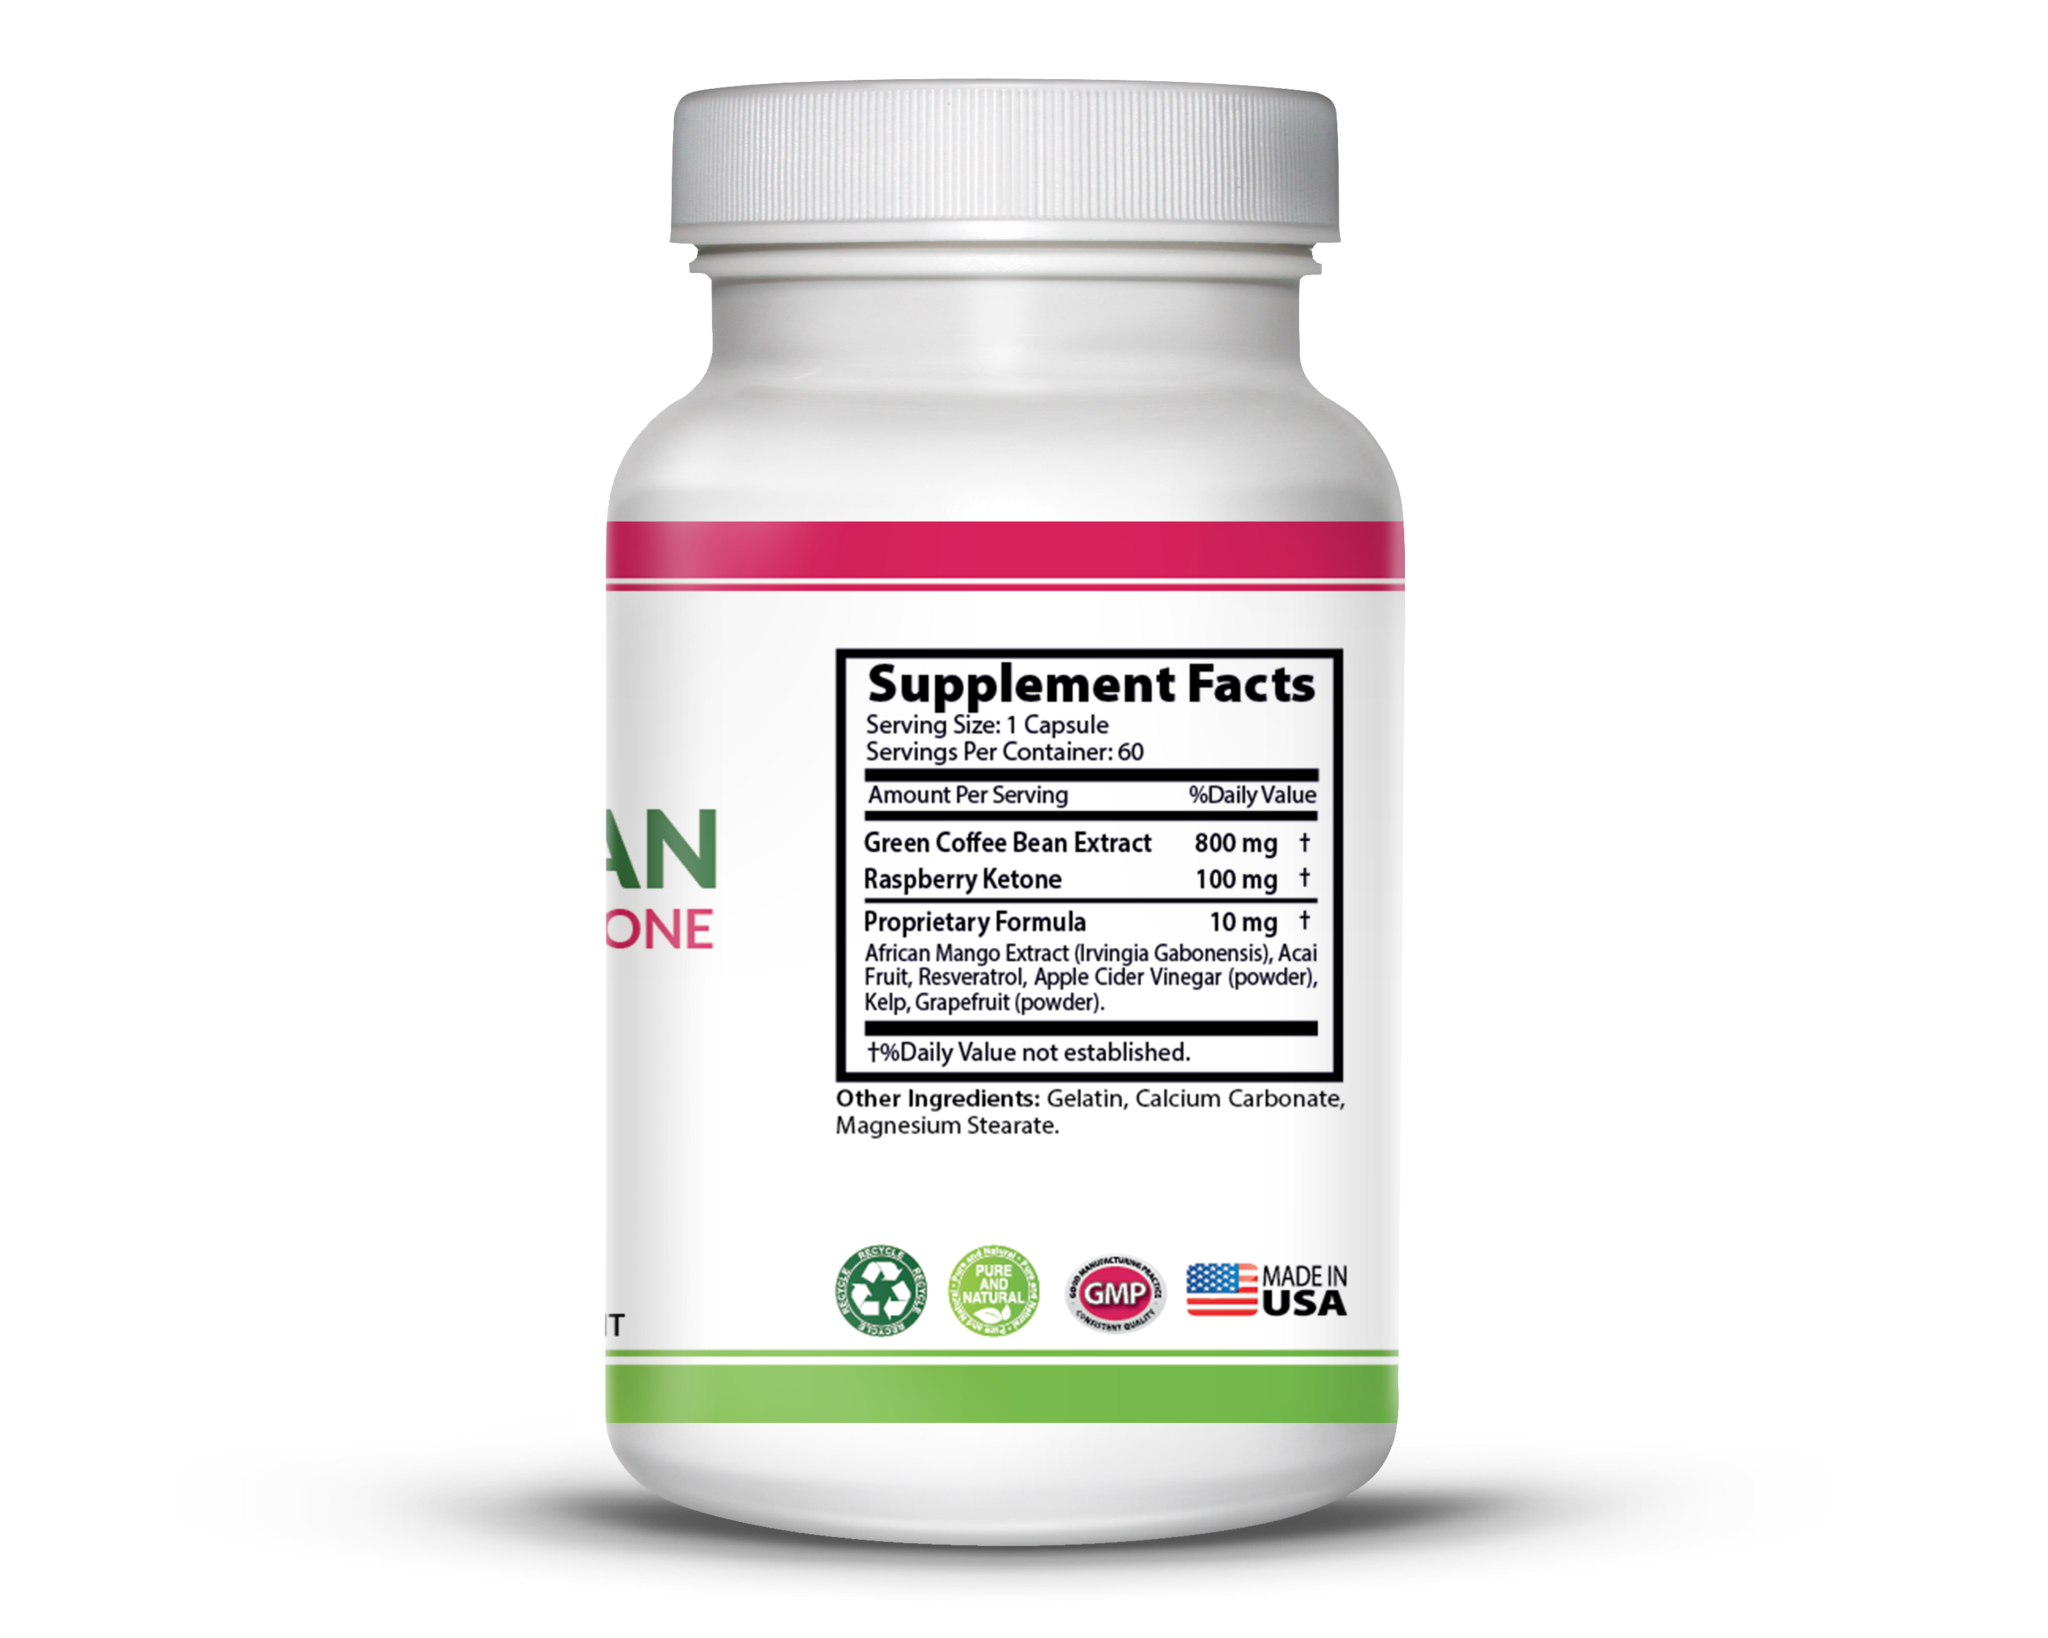 Green Coffee Bean Extract Lean Formula with Raspberry Ketone